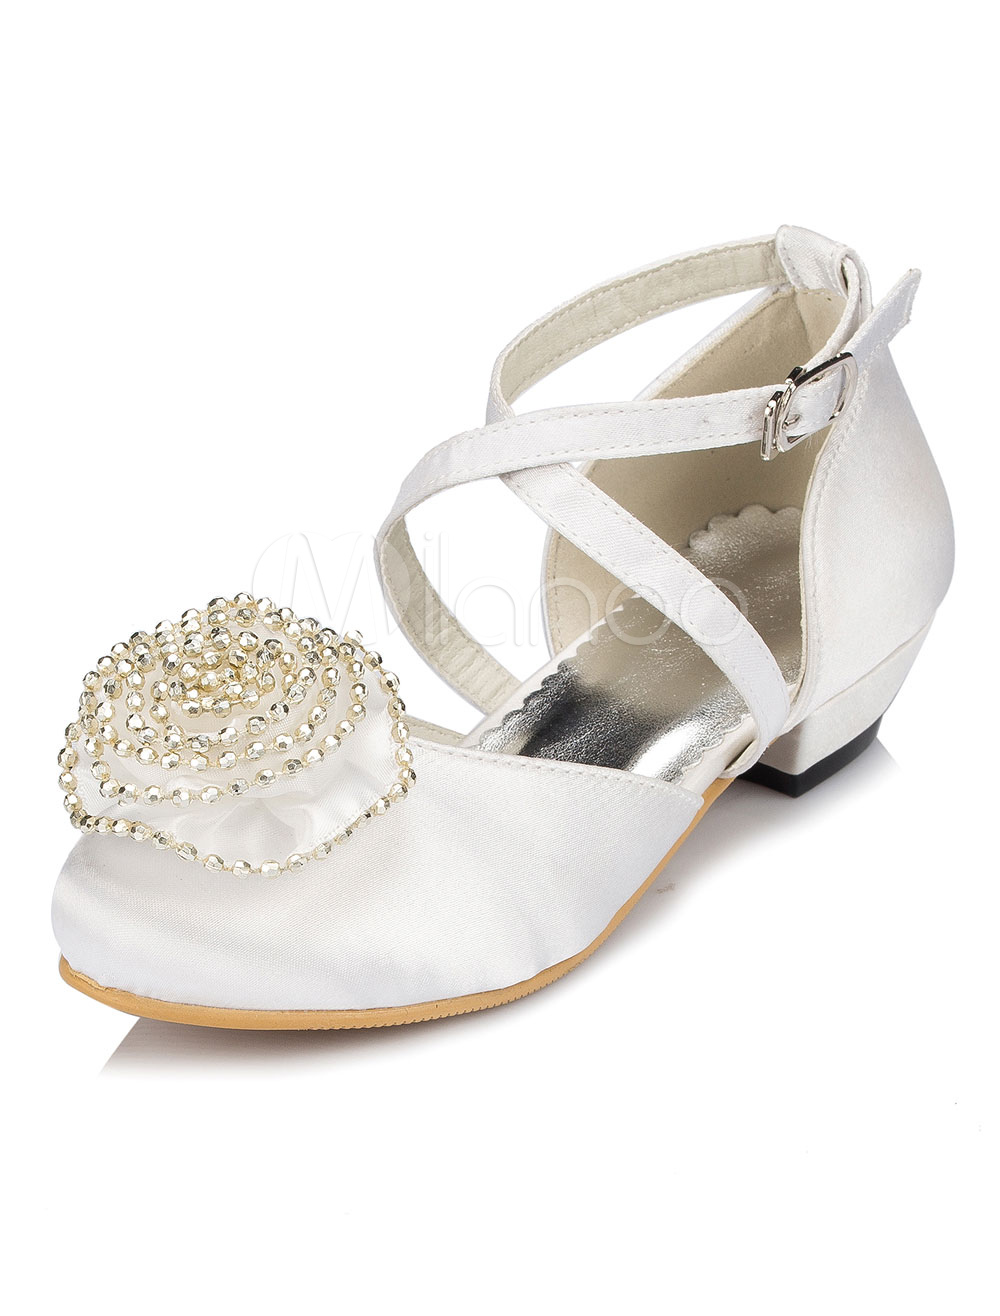 White Flower Girl Sandals Flower Chic Cross Straps Satin Shoes